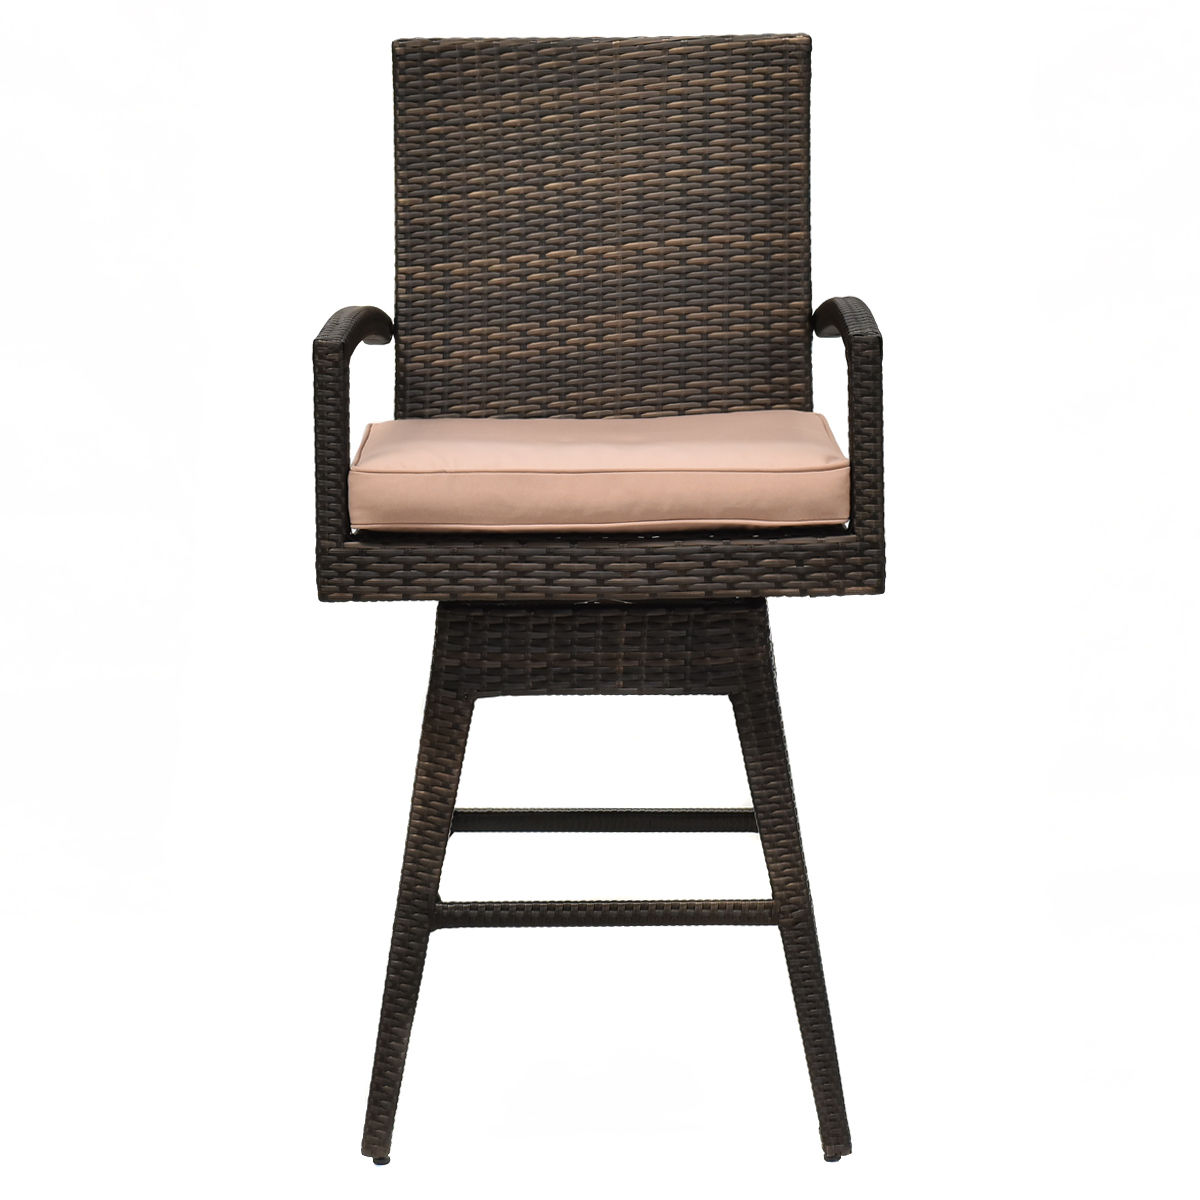 GHP 260Lbs Capacity Outdoor Rattan Wicker Swivel Bar Stool Chair with Cushioned Seat